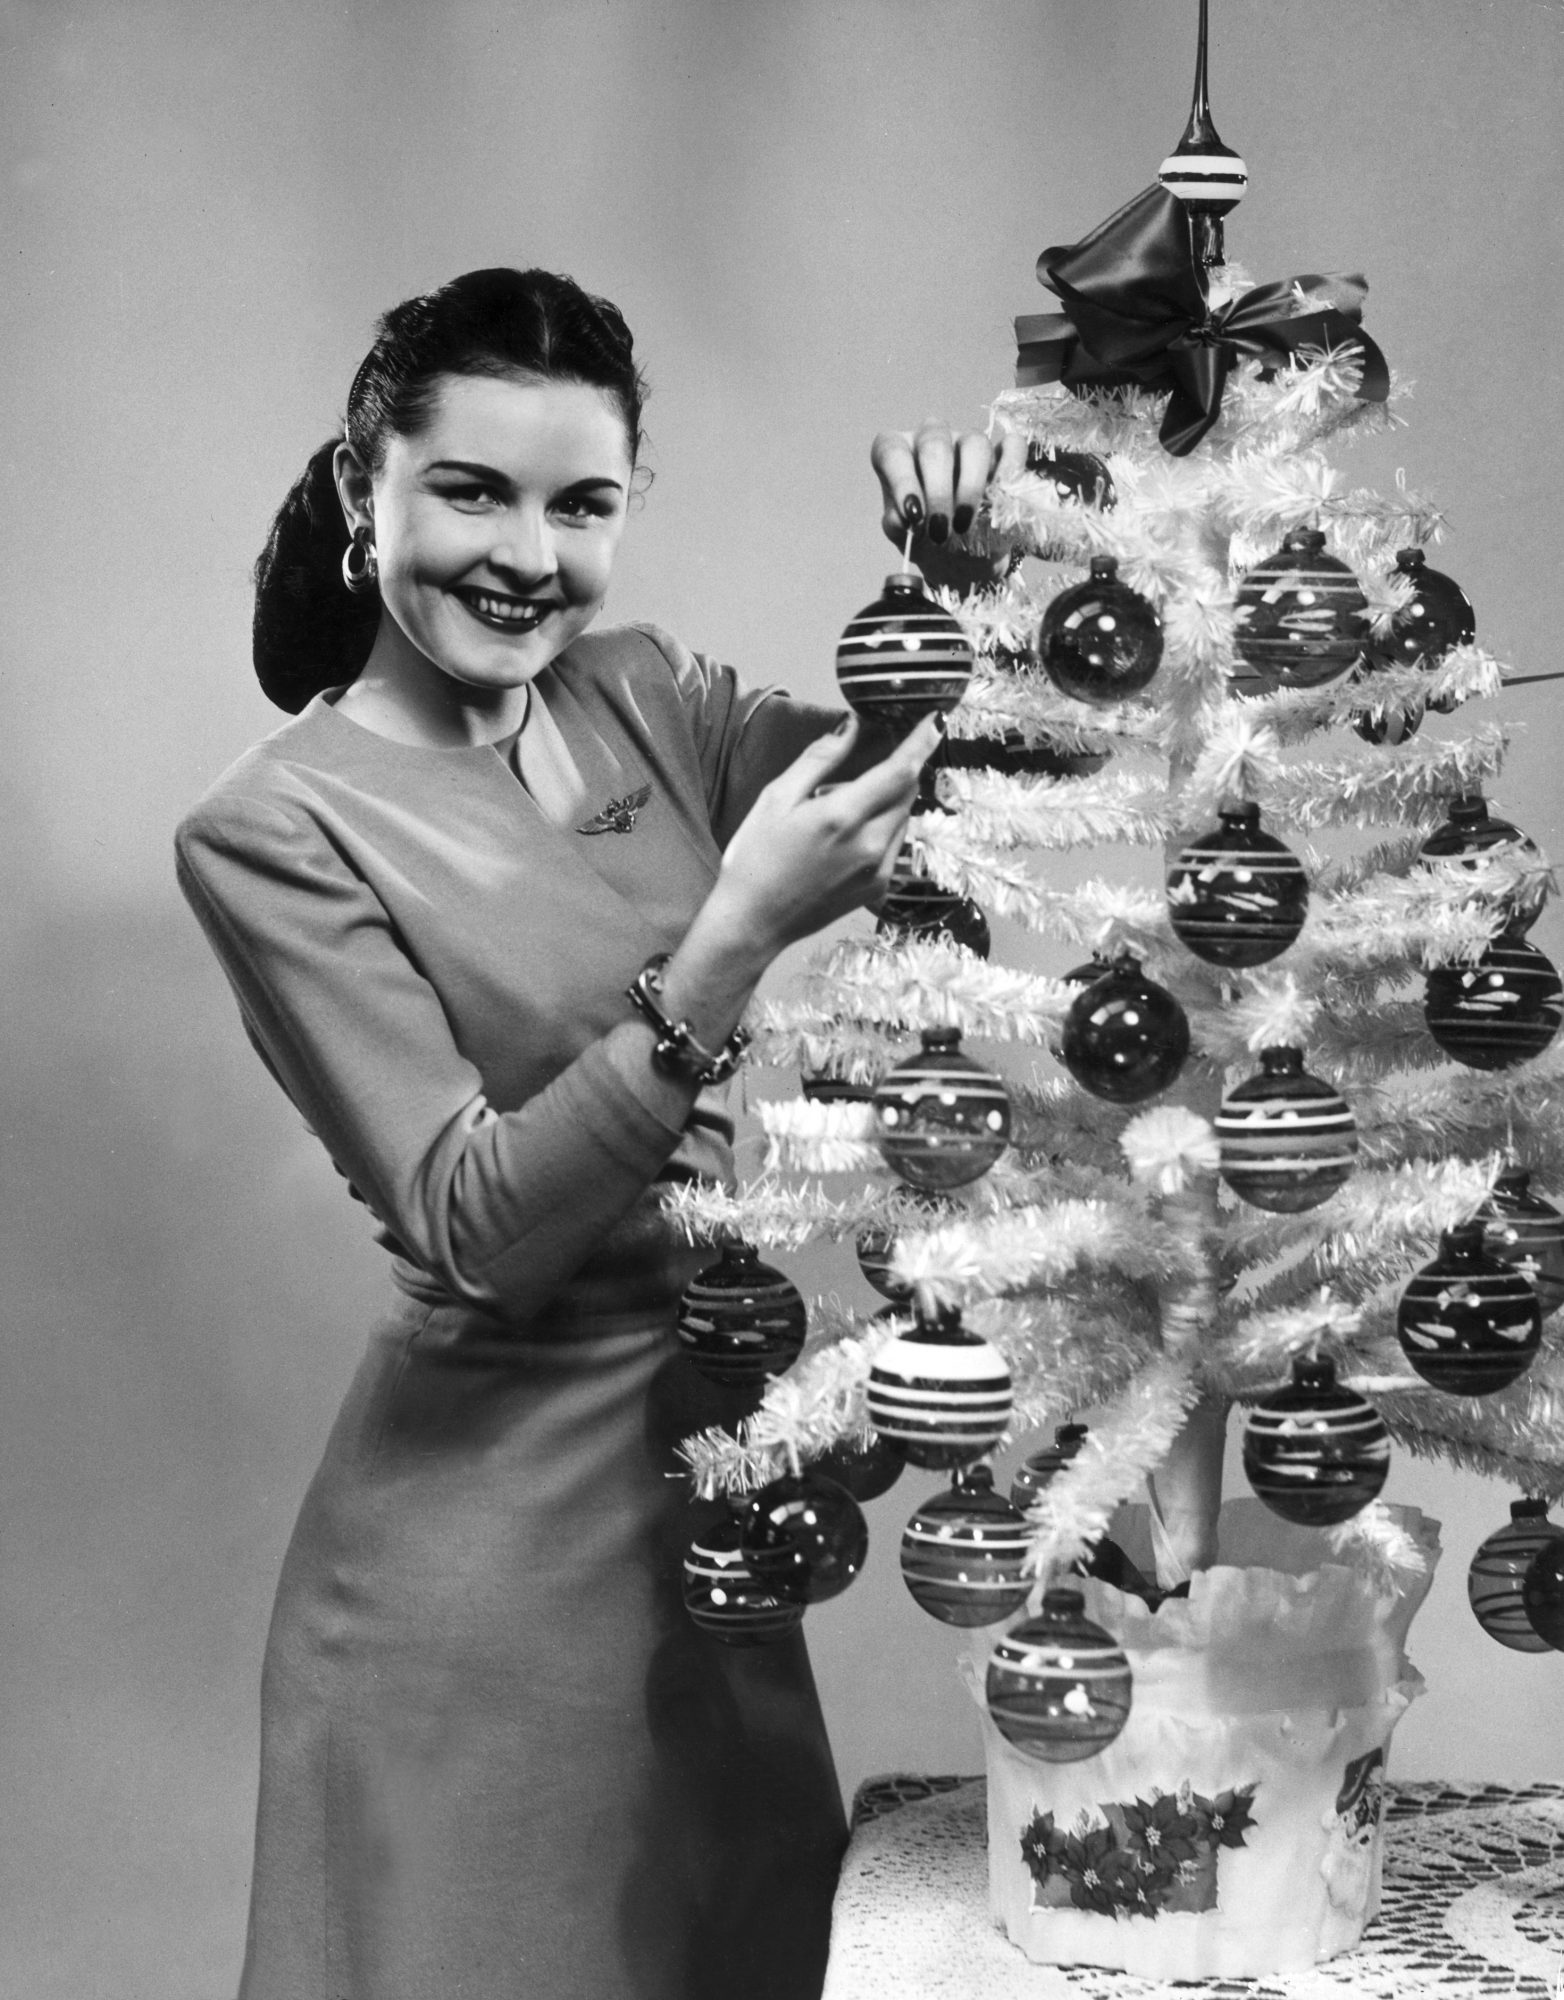 Vintage Woman Decorating Christmas Tree